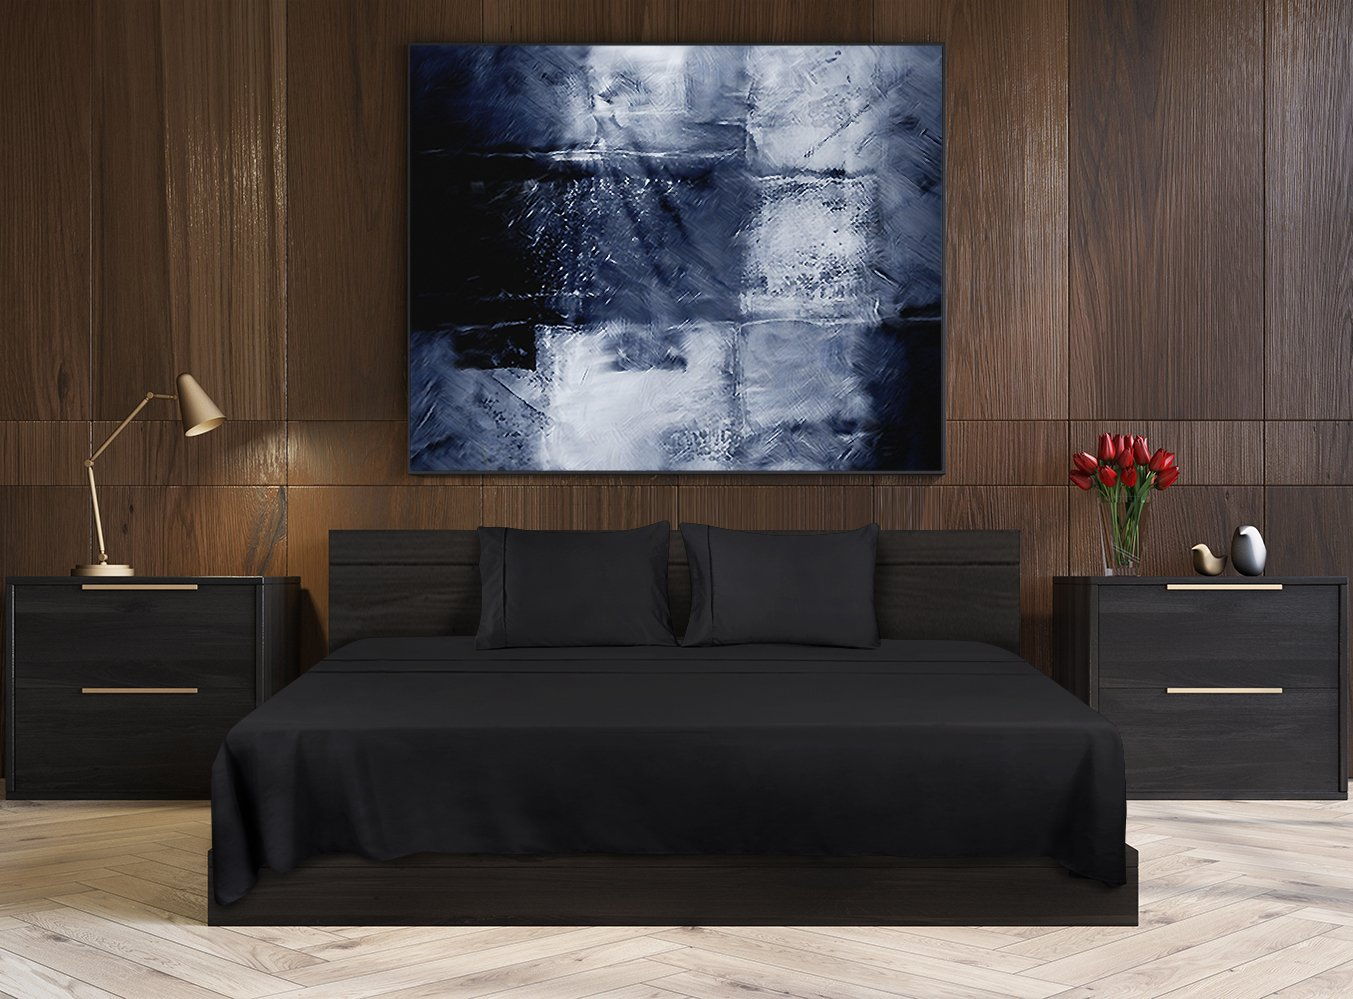 Utopia Bedding Soft Brushed Microfiber Wrinkle Fade and Stain Resistant 4-Piece Full Bed Sheet Set - Black